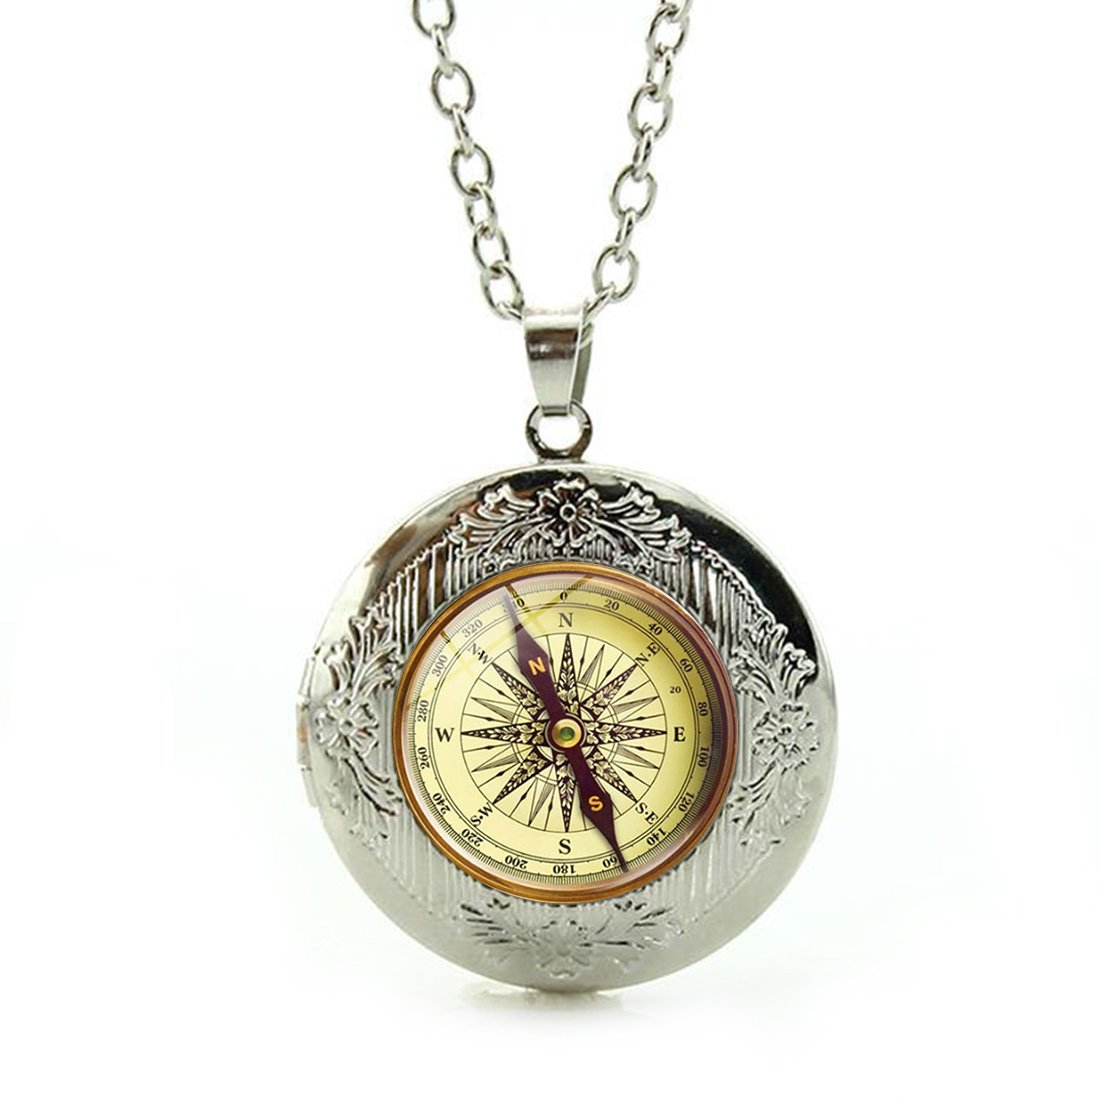 Women's Custom Locket Closure Pendant Necklace Retro Compass Art Antique Included Free Silver Chain, Best Gift Set